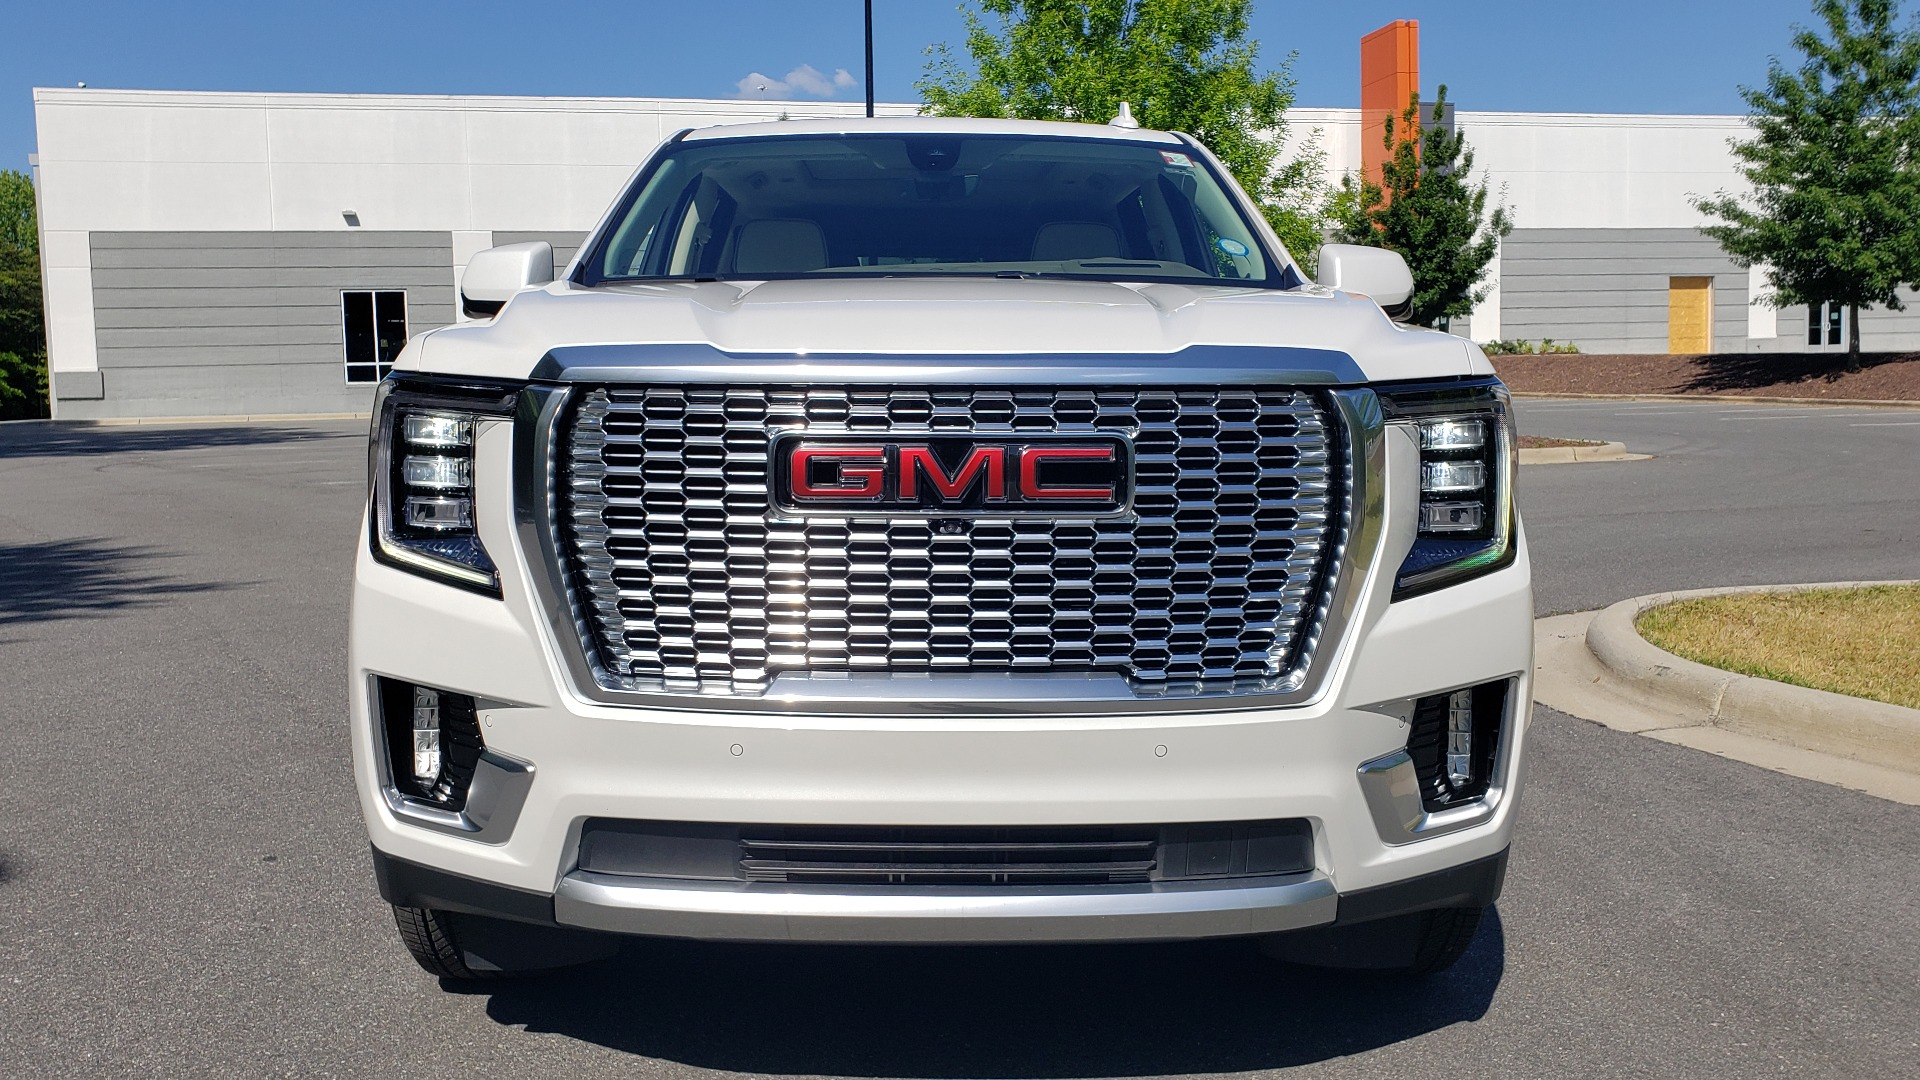 Used 2021 GMC YUKON DENALI PREM / 4WD / NAV / TECH / TRAILER / SECURITY / SUNROOF for sale Sold at Formula Imports in Charlotte NC 28227 76